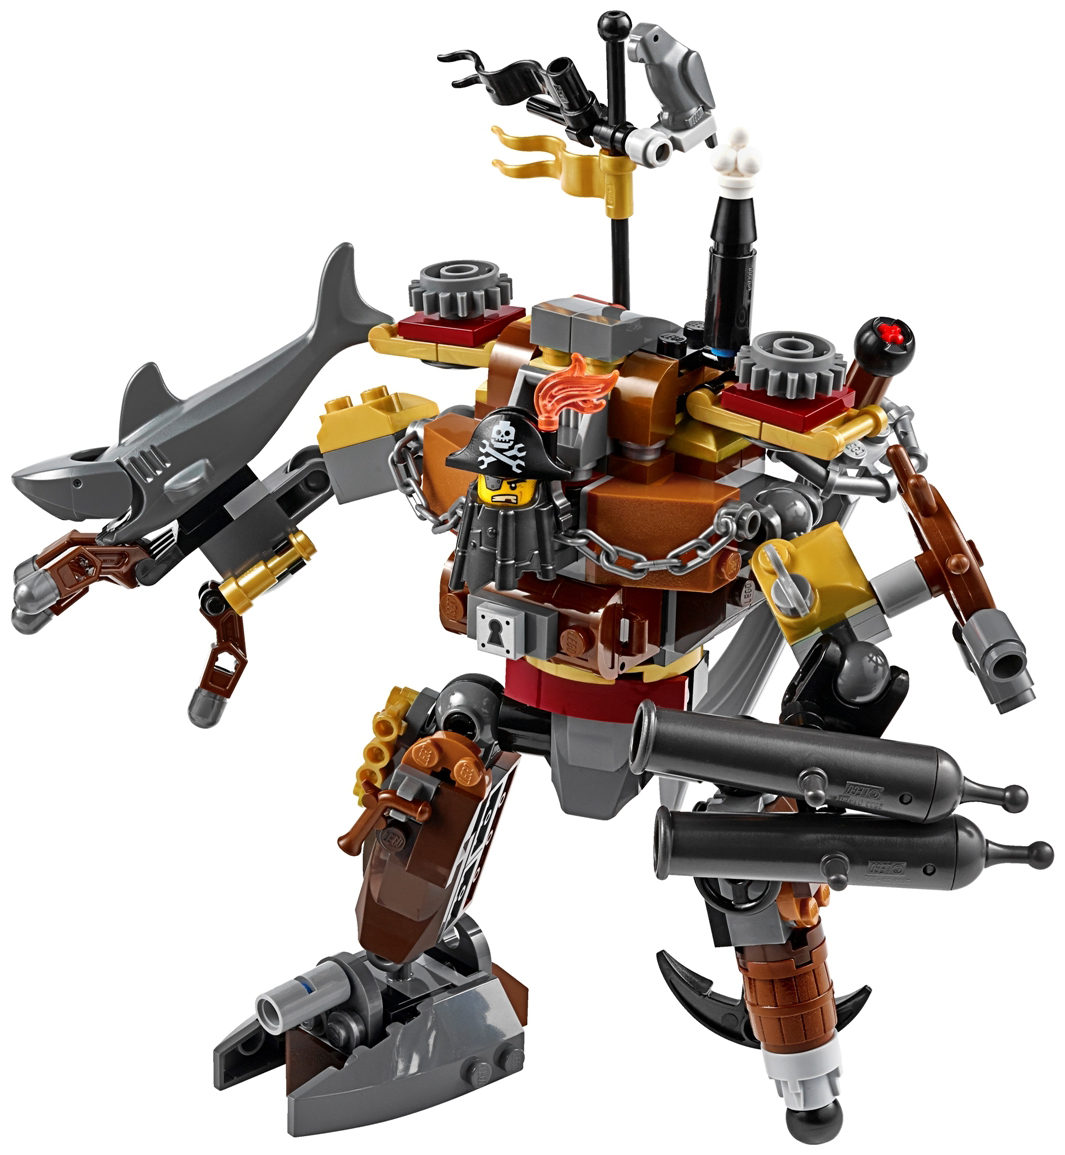 70807 Metalbeard S Duel Brickipedia The Lego Wiki